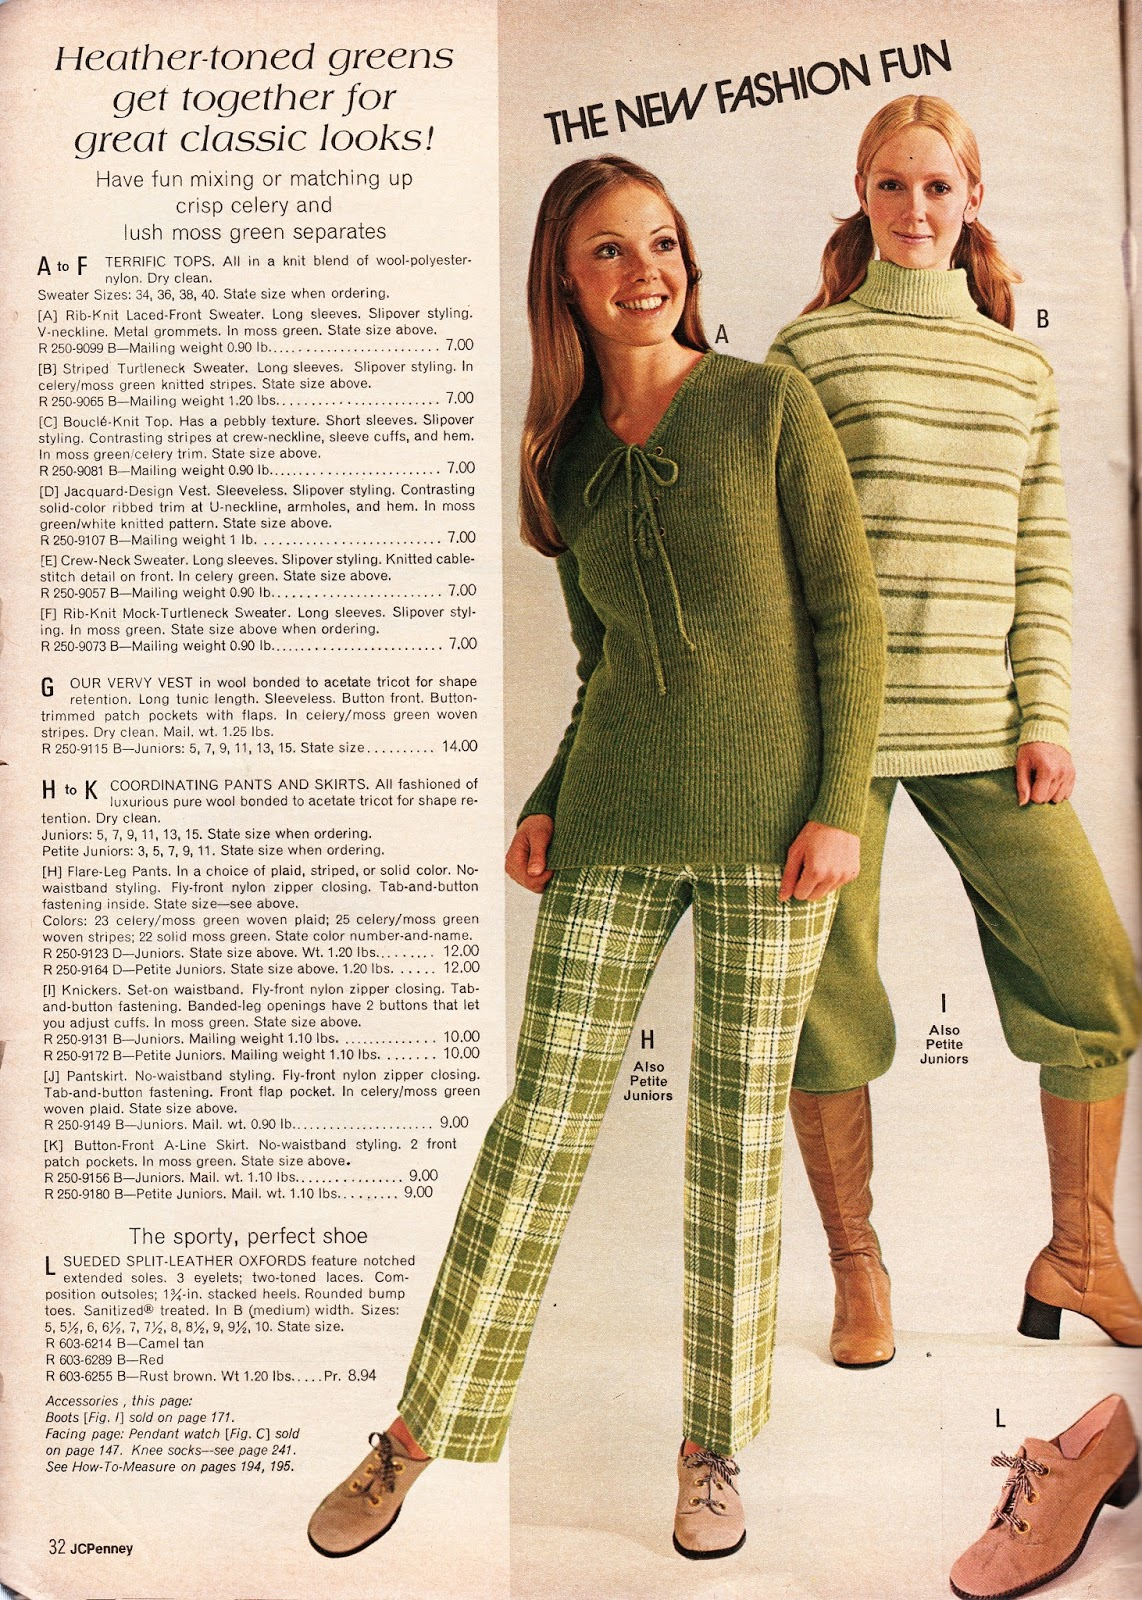 ef6dd90f9a36 Kathy Loghry Blogspot  JCPenney Catalog 1971 - The New Fashion Fun